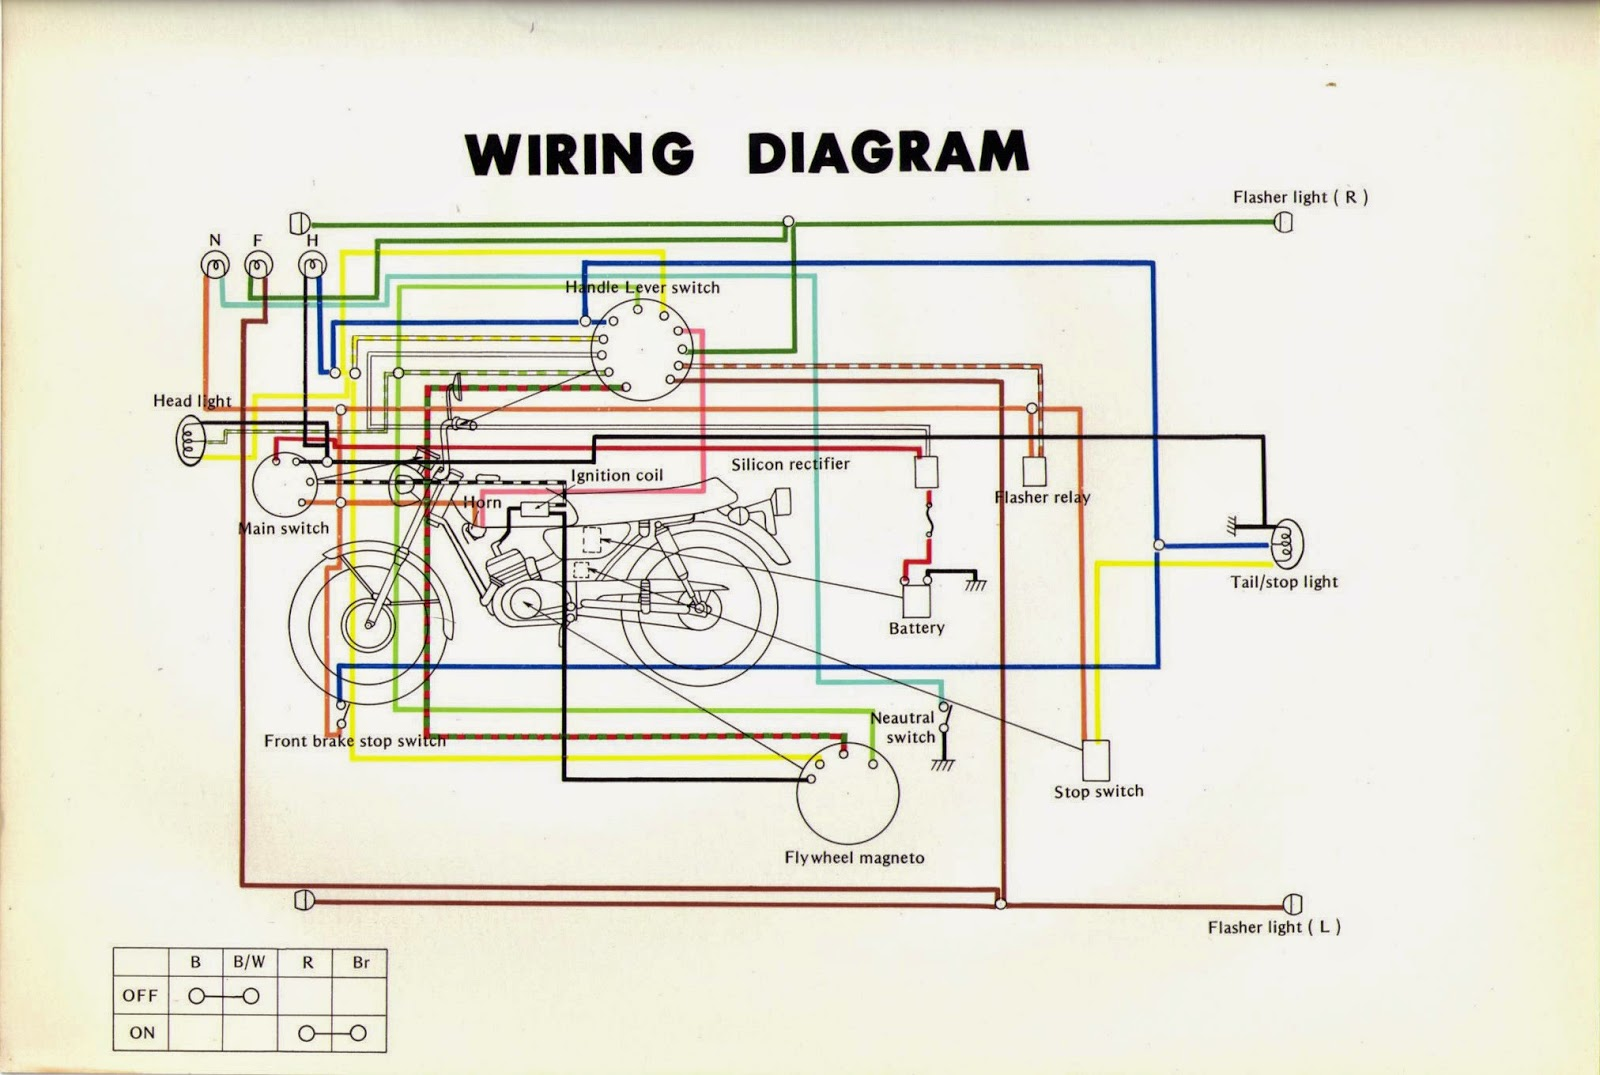 Wiring Diagram For Yamaha Gp1300r flow chart template for mac